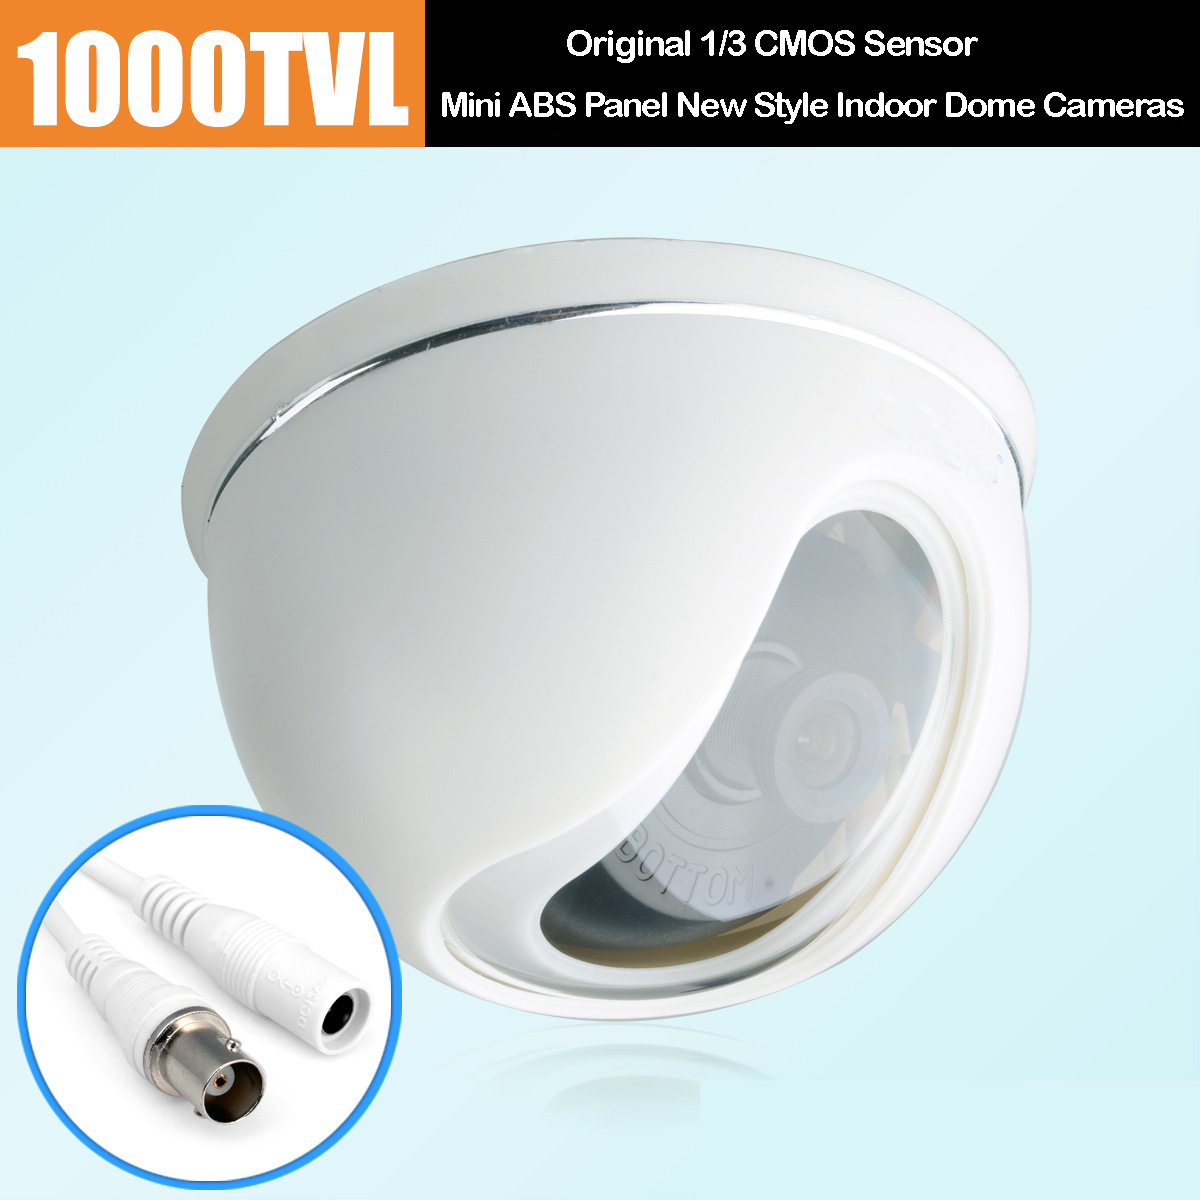 Sony 1000TVL Mini ABS Panel New Style Indoor Dome CCTV Cameras